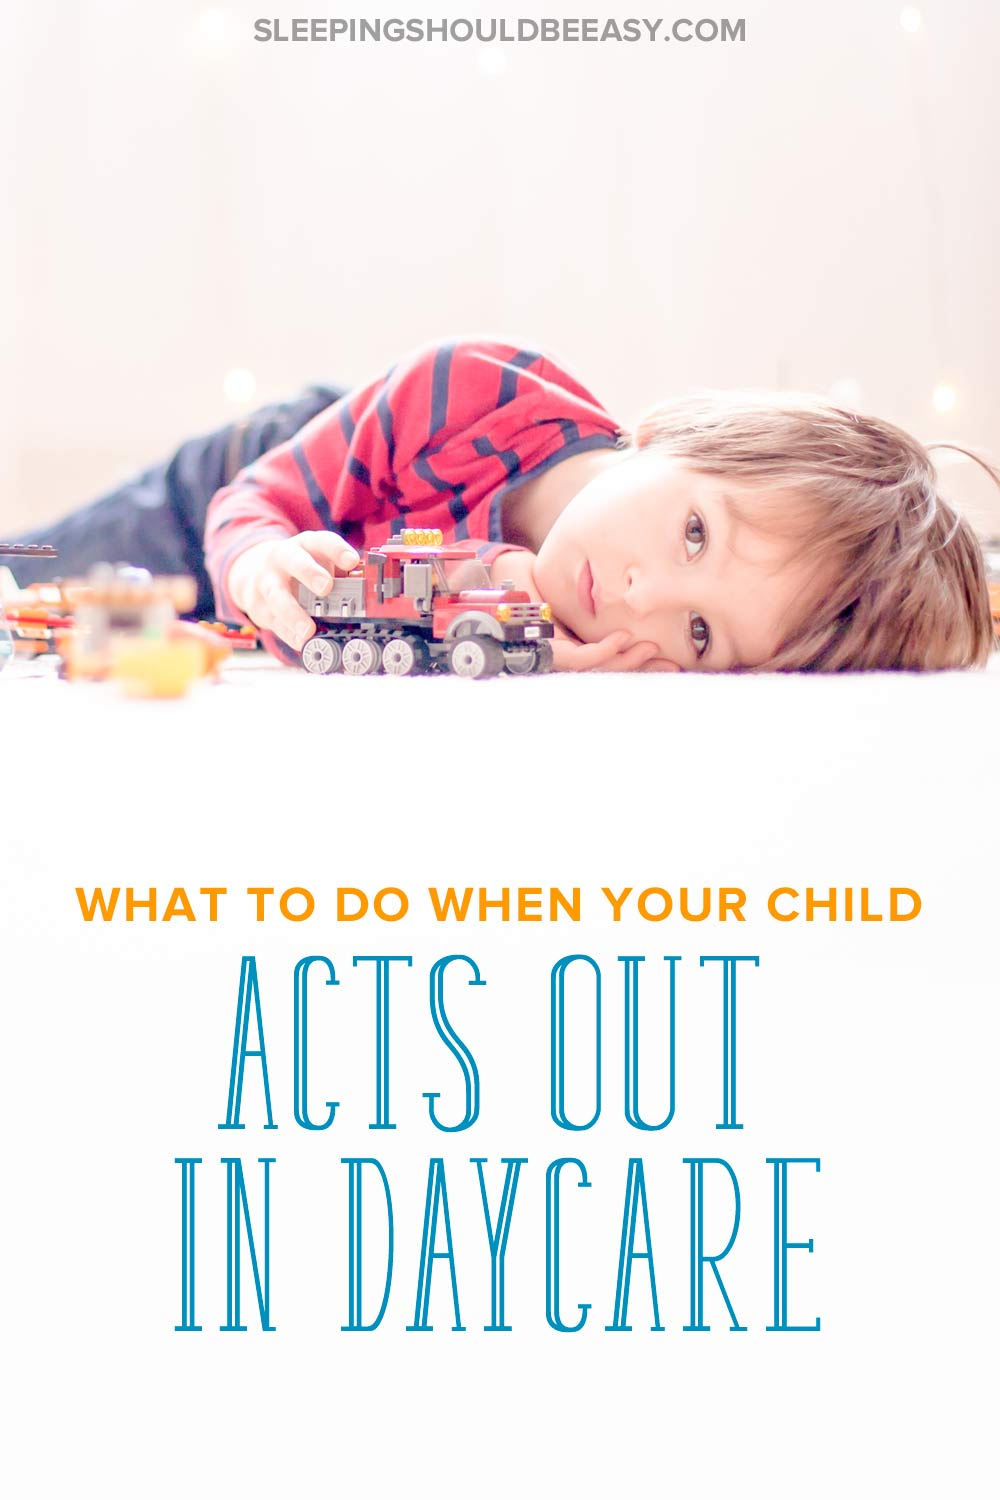 3 Year Old Acting Out at Daycare? How to Curb Your Child's